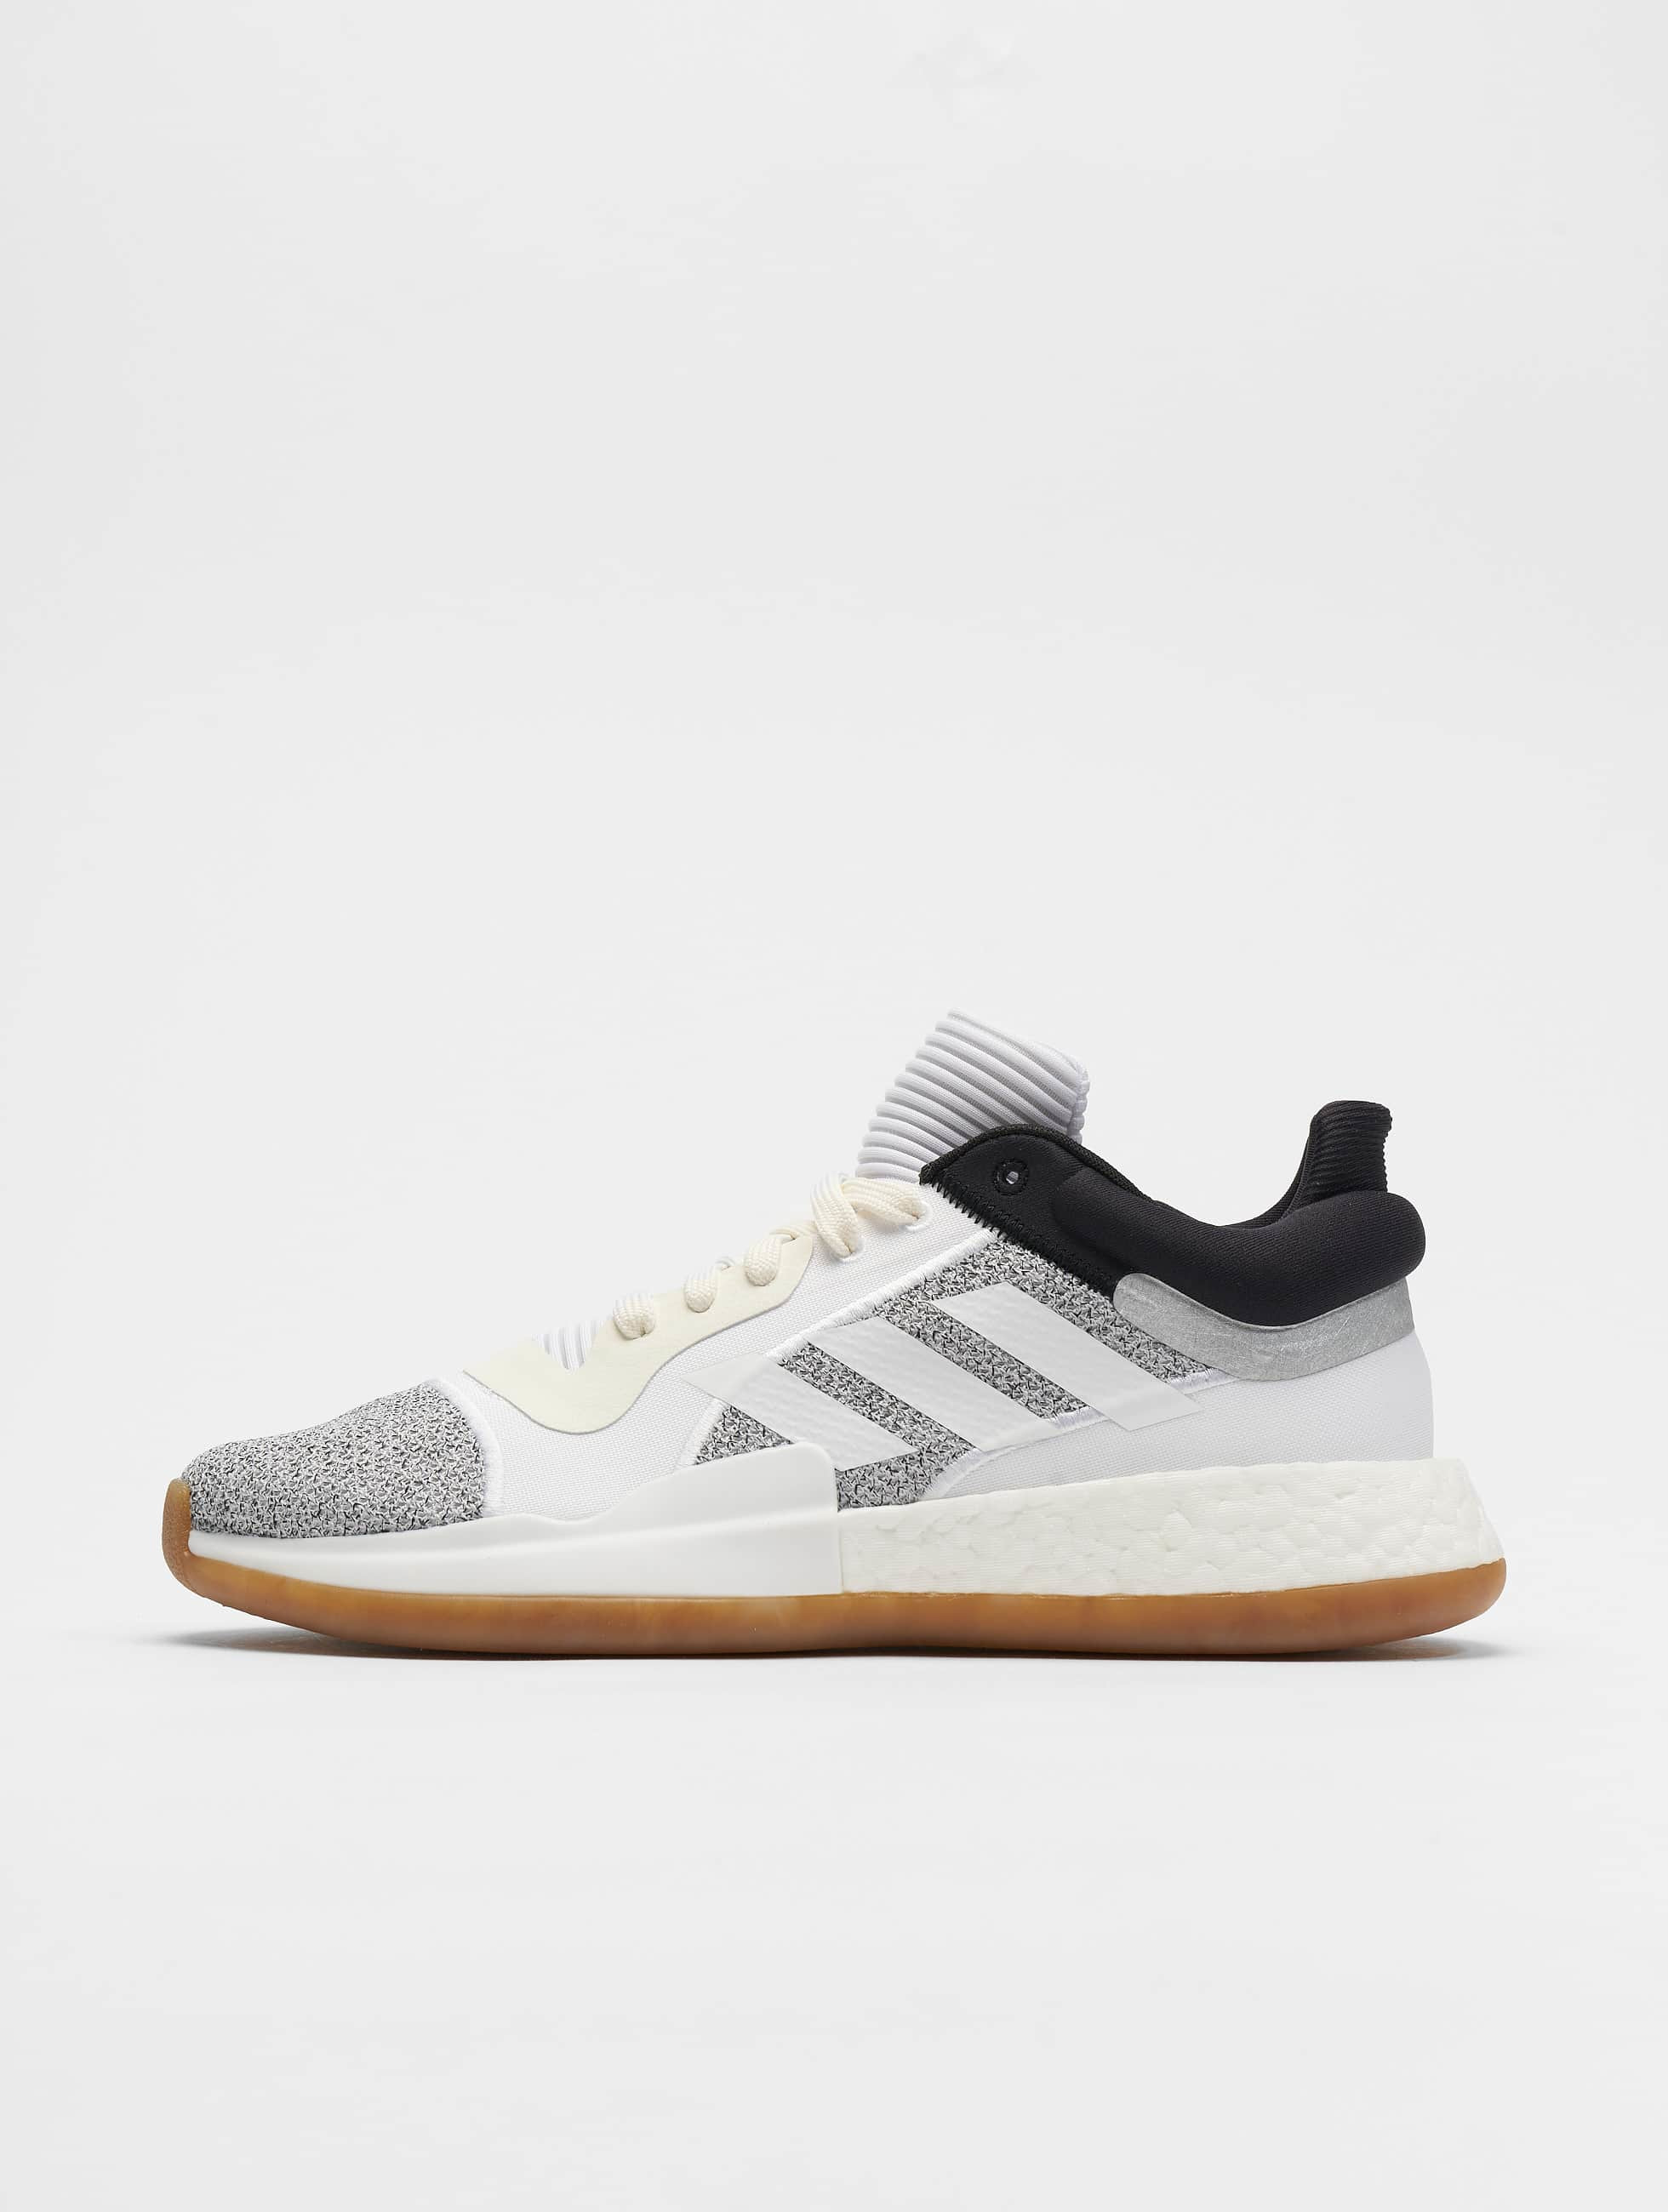 adidas Marquee Boost Low Basketball Shoes O WhiteFtw WhiteCore Black